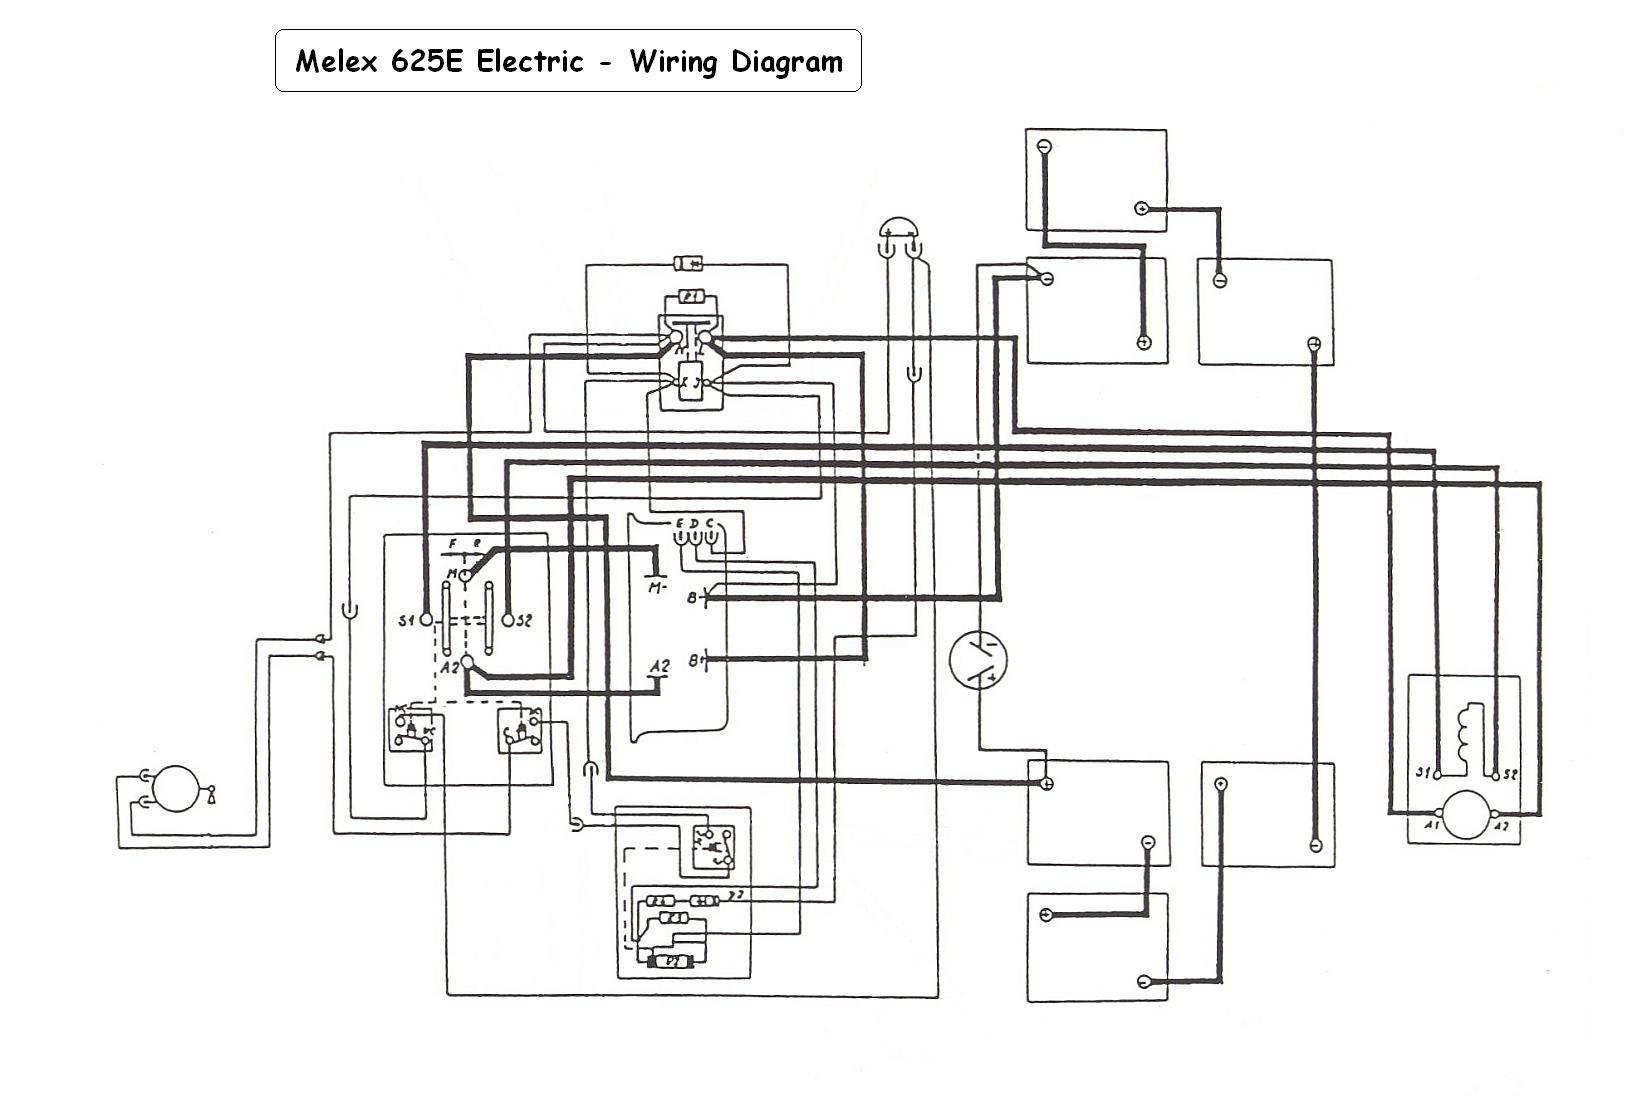 melex 212 light wiring diagram model wiring library melex golf cart wiring diagram for a complete melex 212 wiring diagram [ 1633 x 1100 Pixel ]